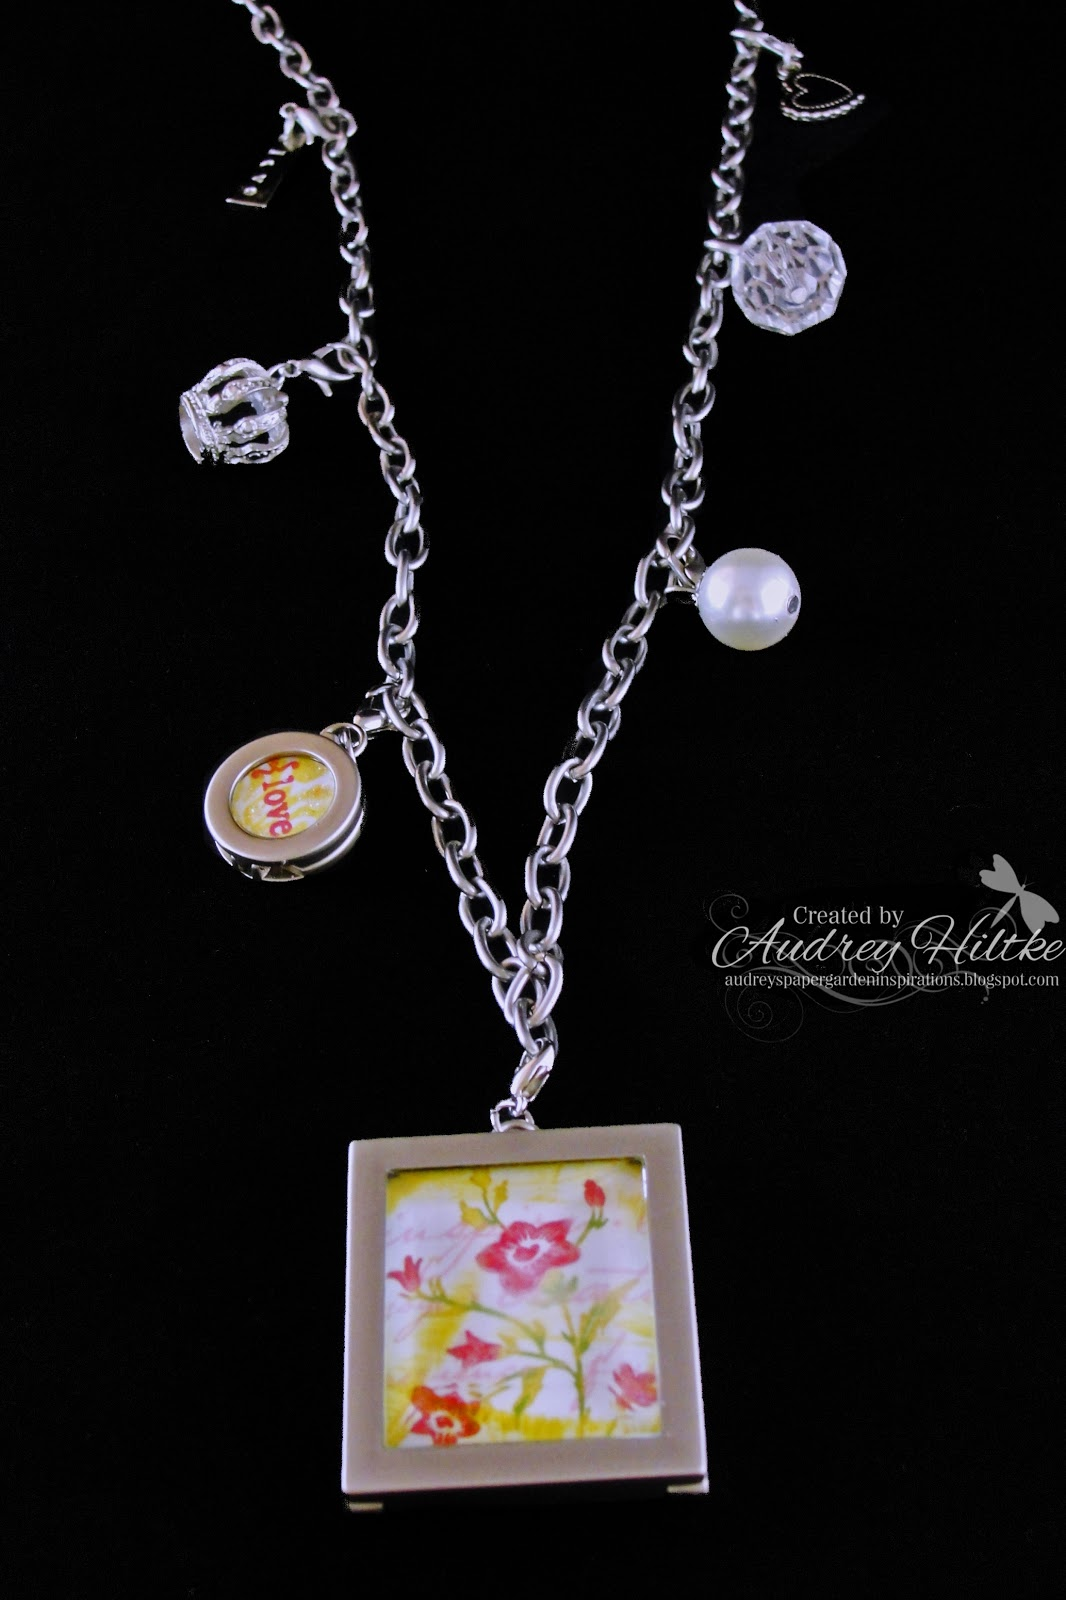 Audrey 39 s paper garden inspirations december 2012 for Jewelry for mom for christmas